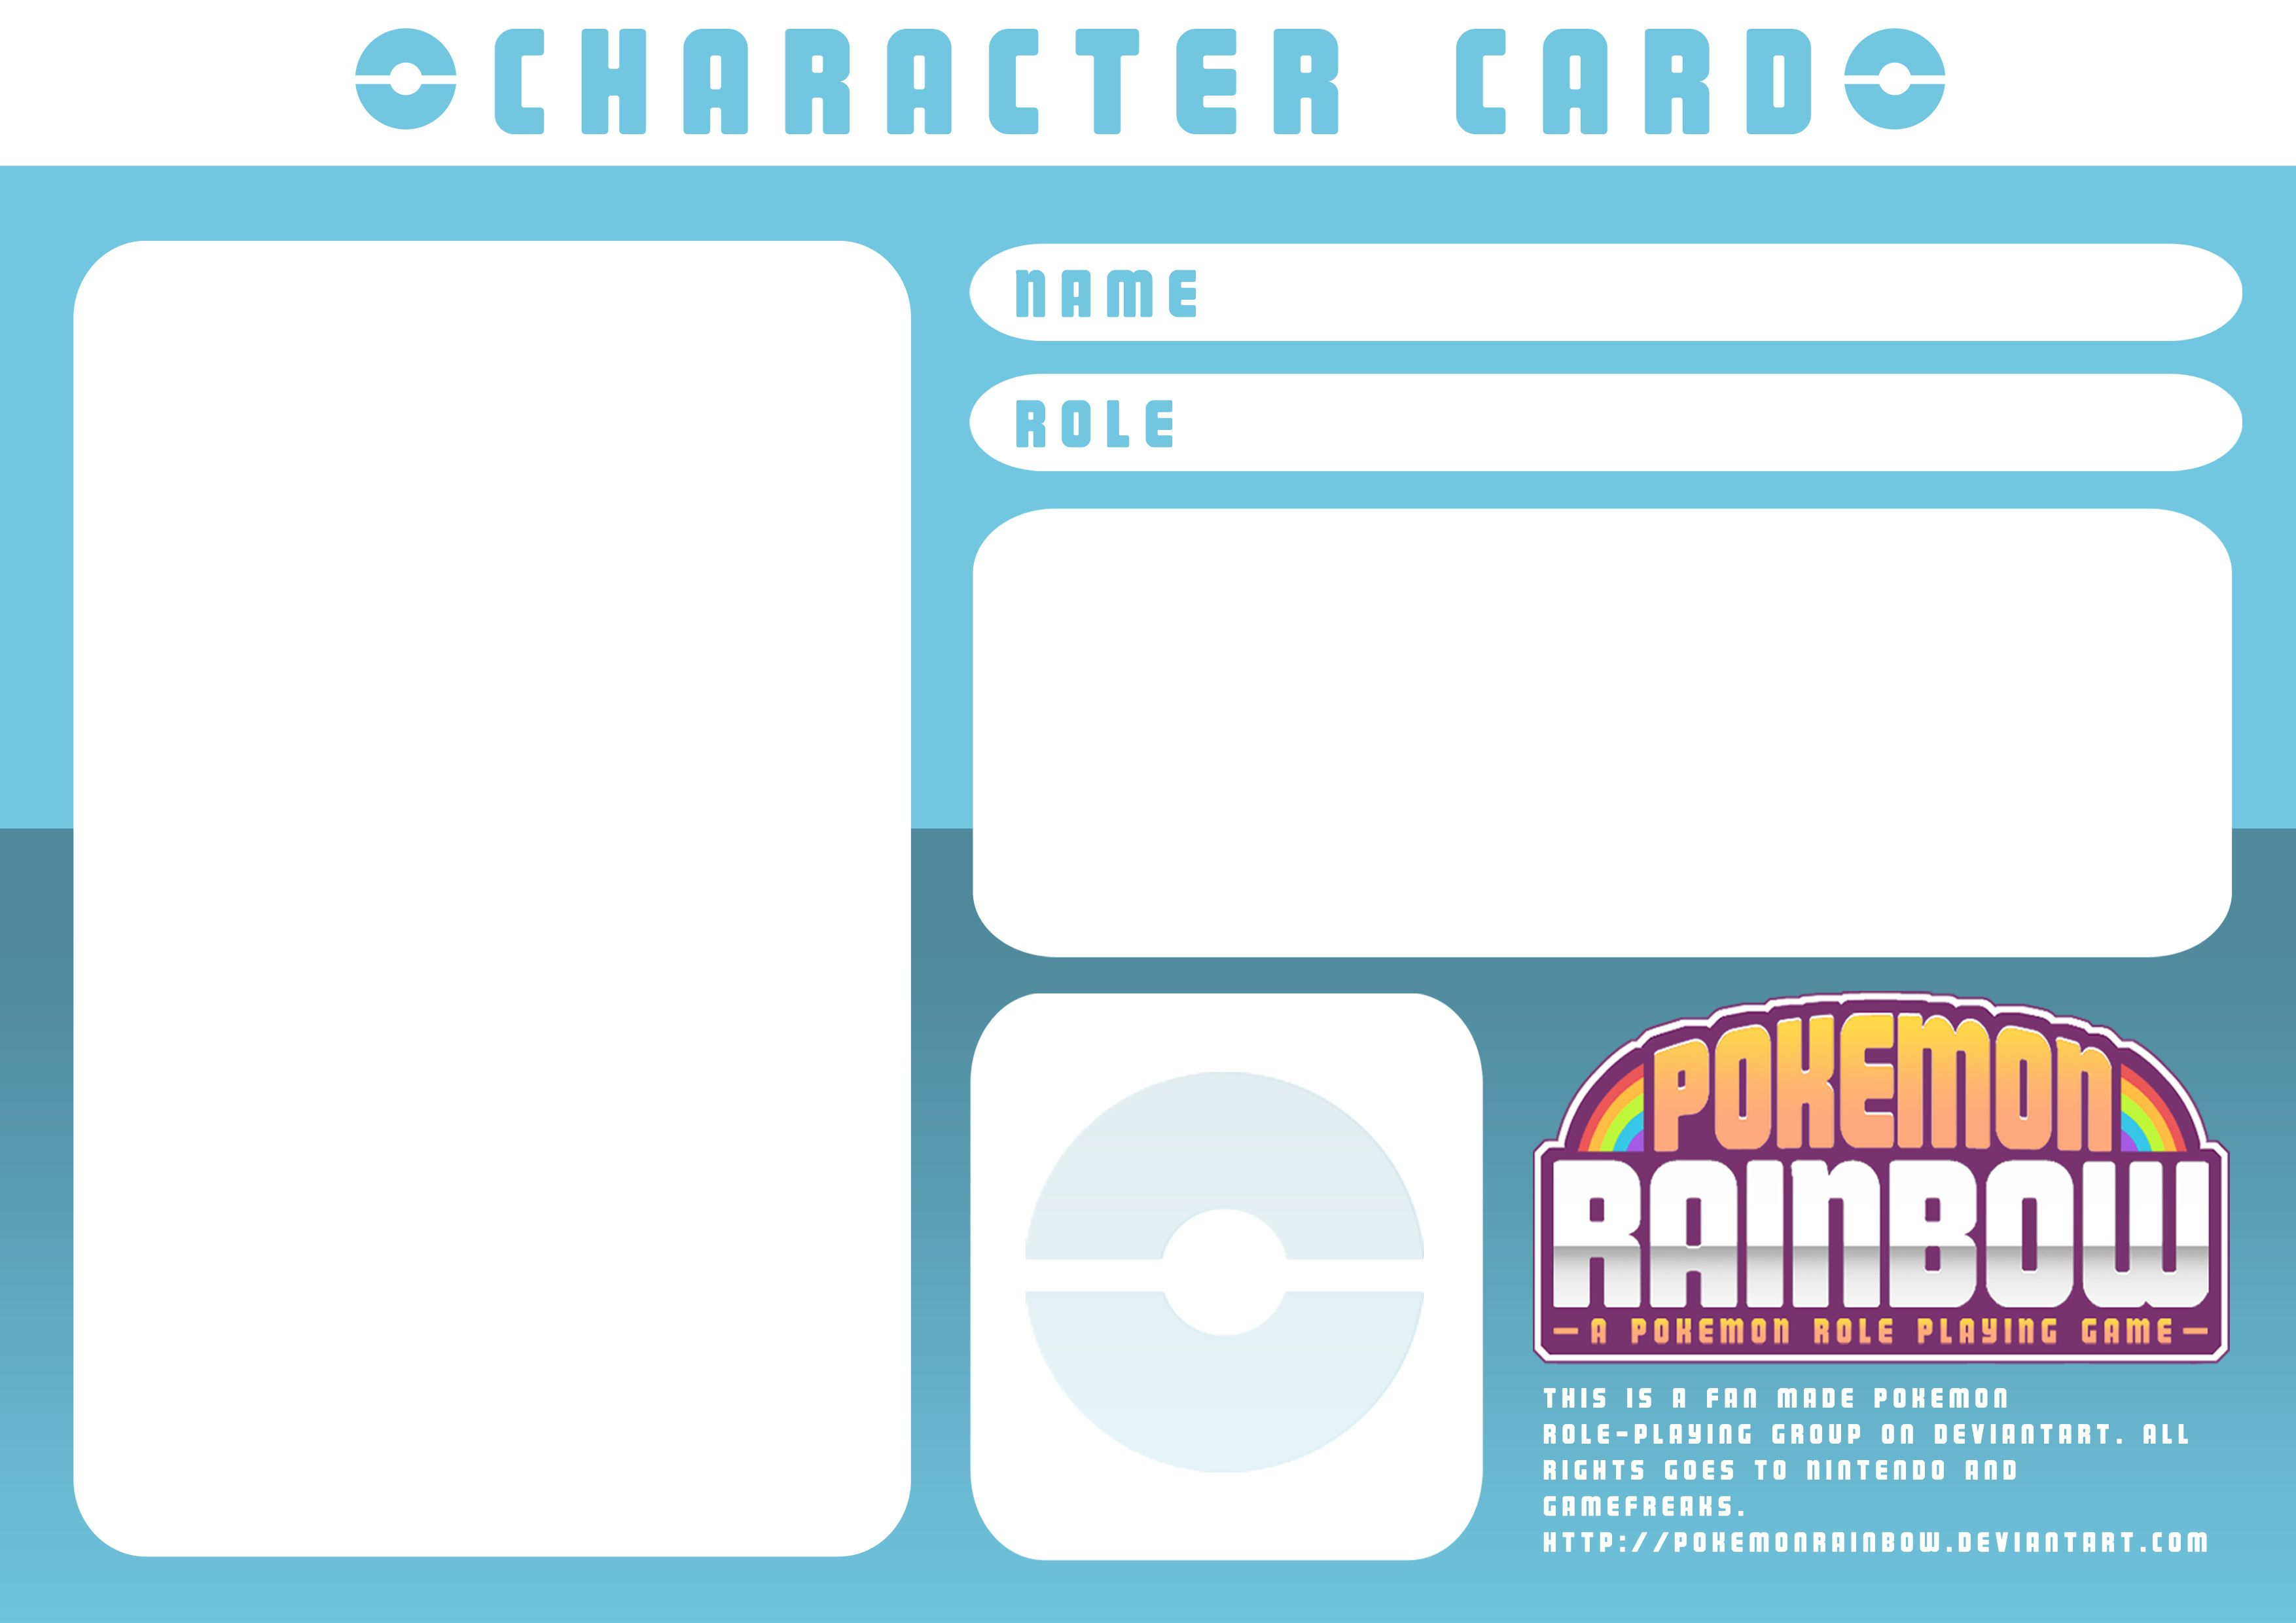 Character Card Templatery Spirit On Deviantart Throughout Pokemon Trainer Card Template Cumed Org Pokemon Trainer Card Pokemon Trainer Report Card Template